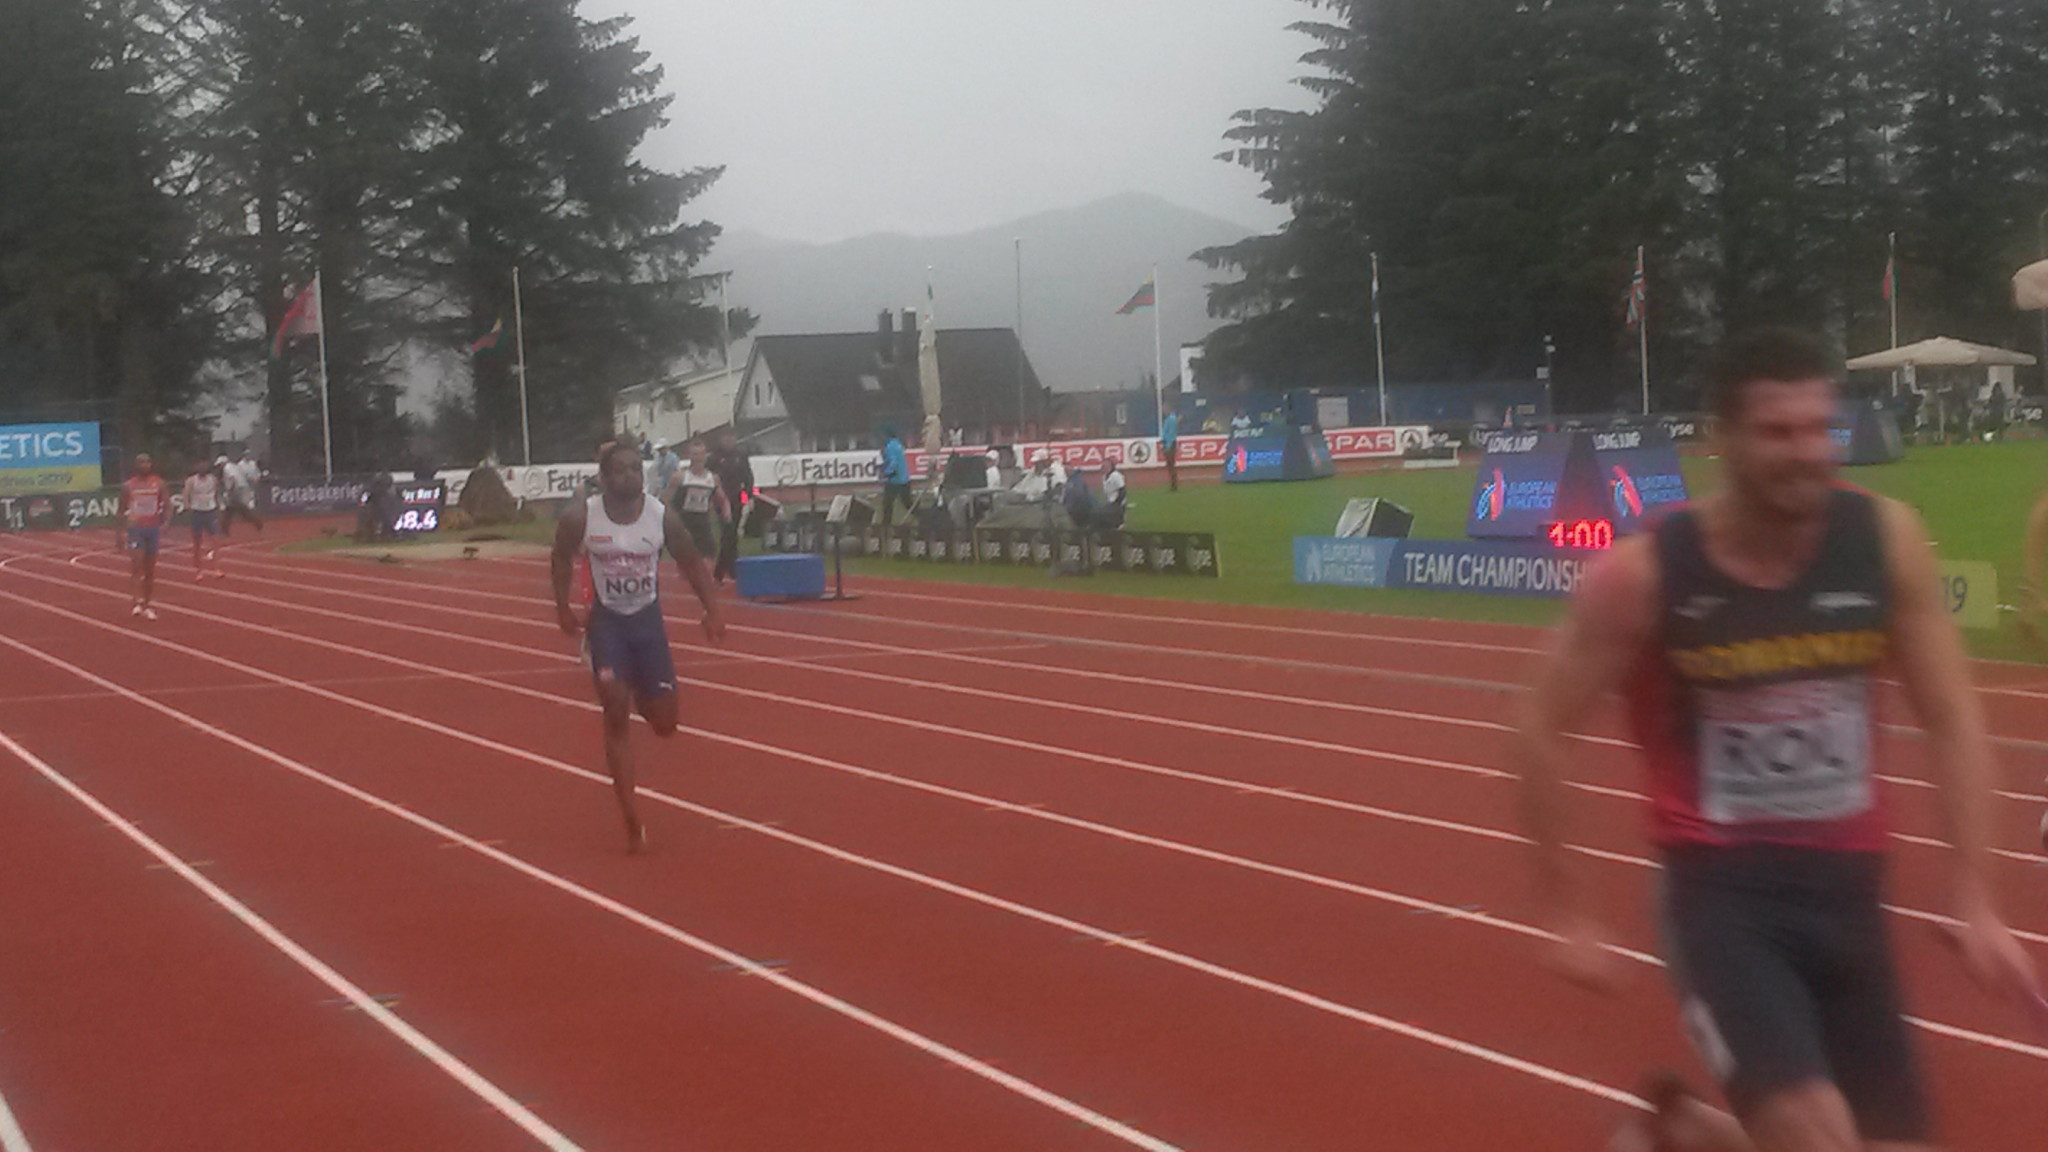 Norway's T12 para-sprinter Salum Kashafali brings home the baton for the men's 4x100m team in Sandnes today after earning fourth place in the individual final at the EA Team Championships 1st League ©ITG